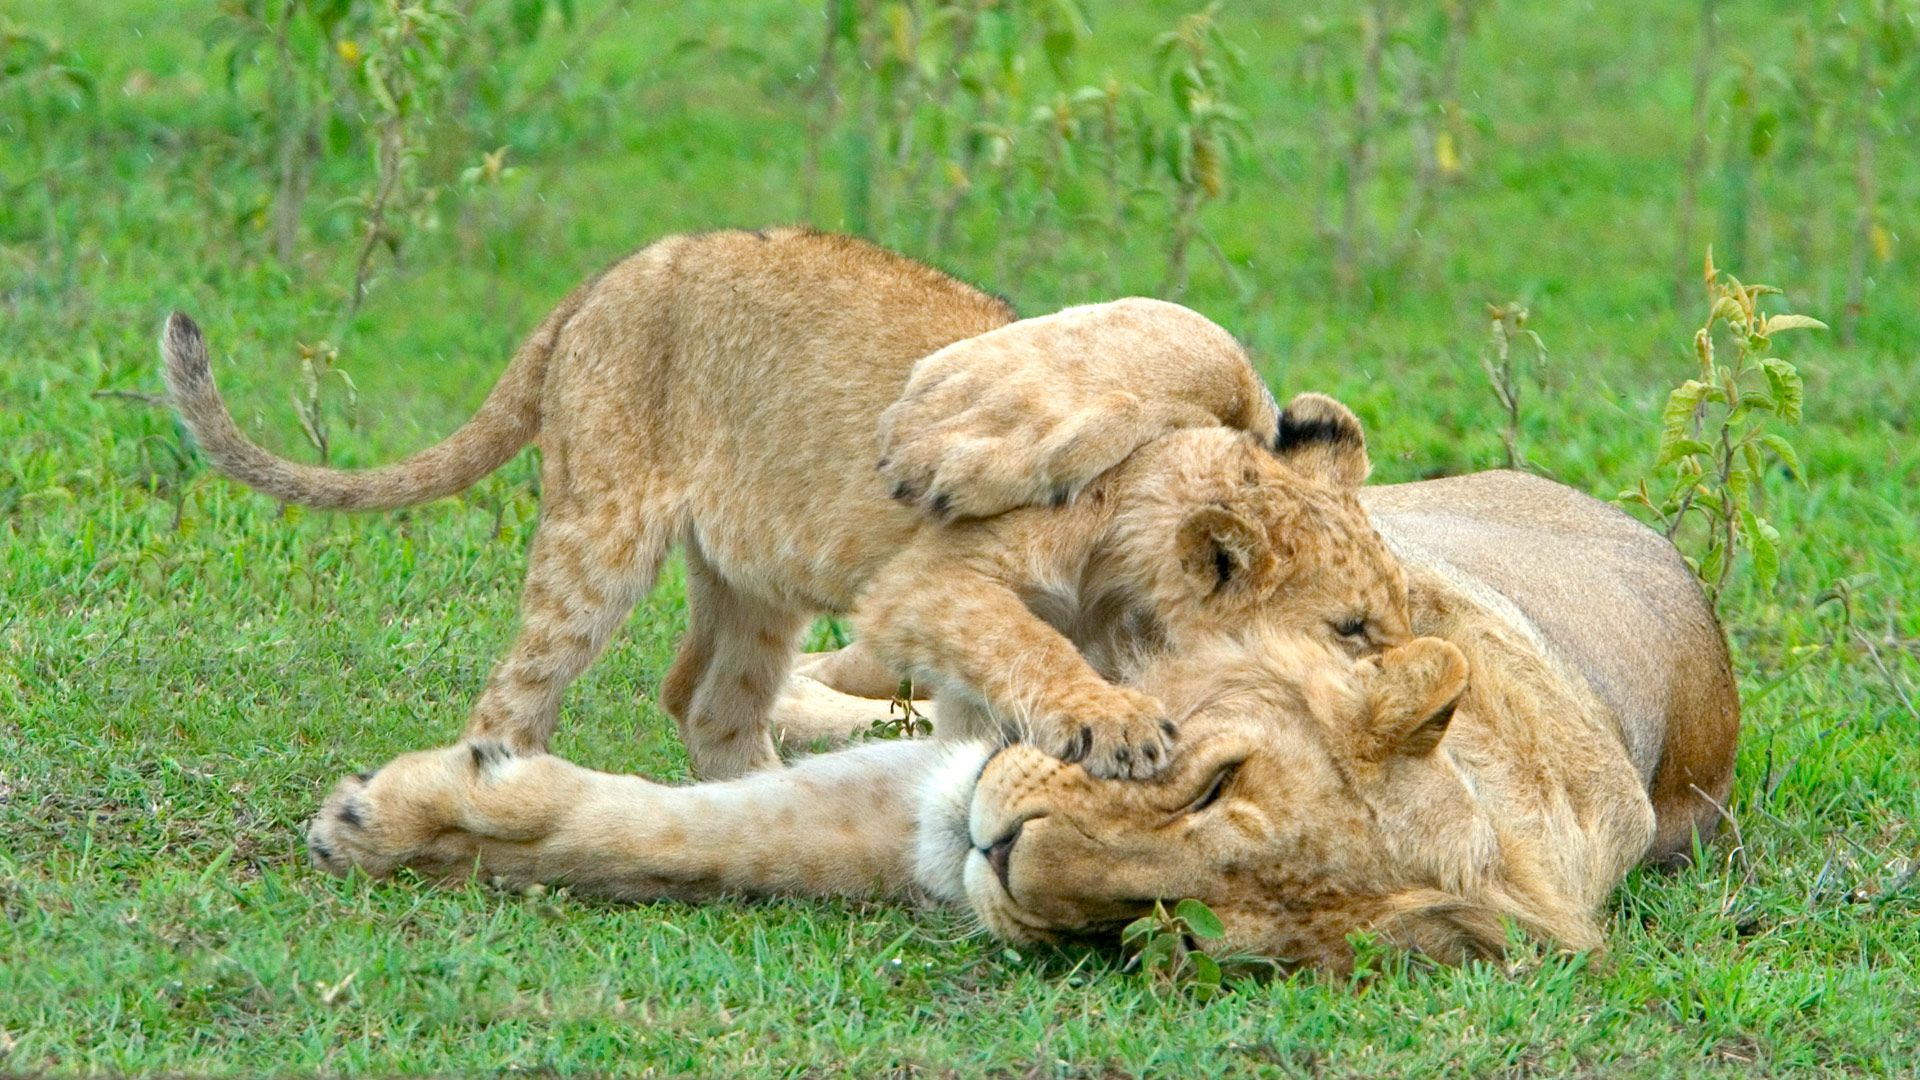 Lion and cub, Tanzania, East Africa.